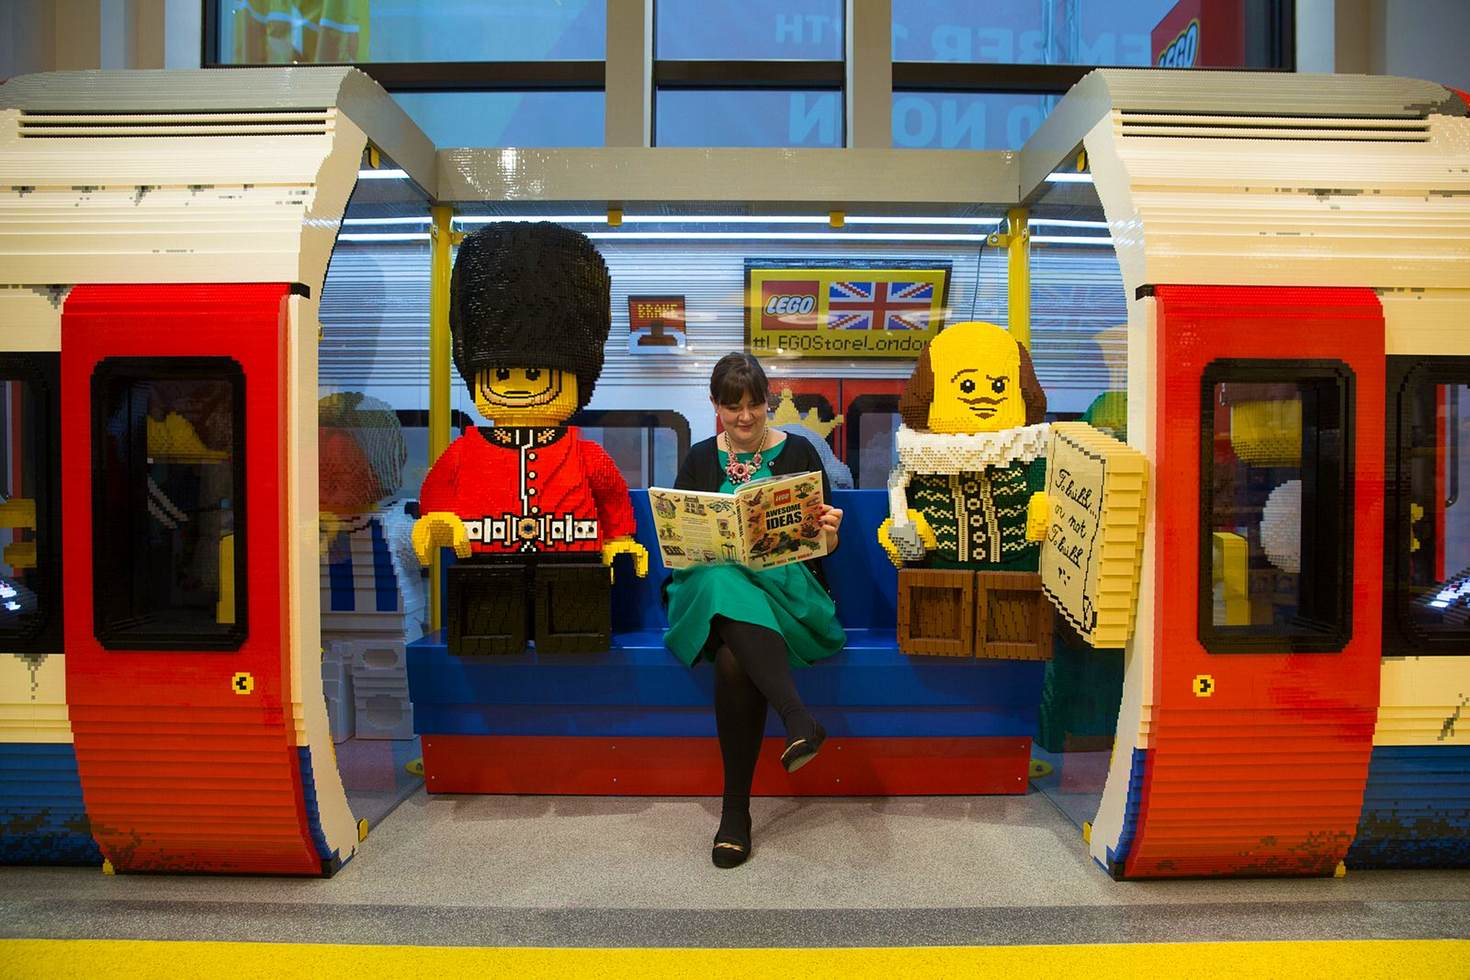 A London Underground Tube train carriage made with LEGO pieces in Leicester Square © Daniel Leal-Olivas / Getty Images